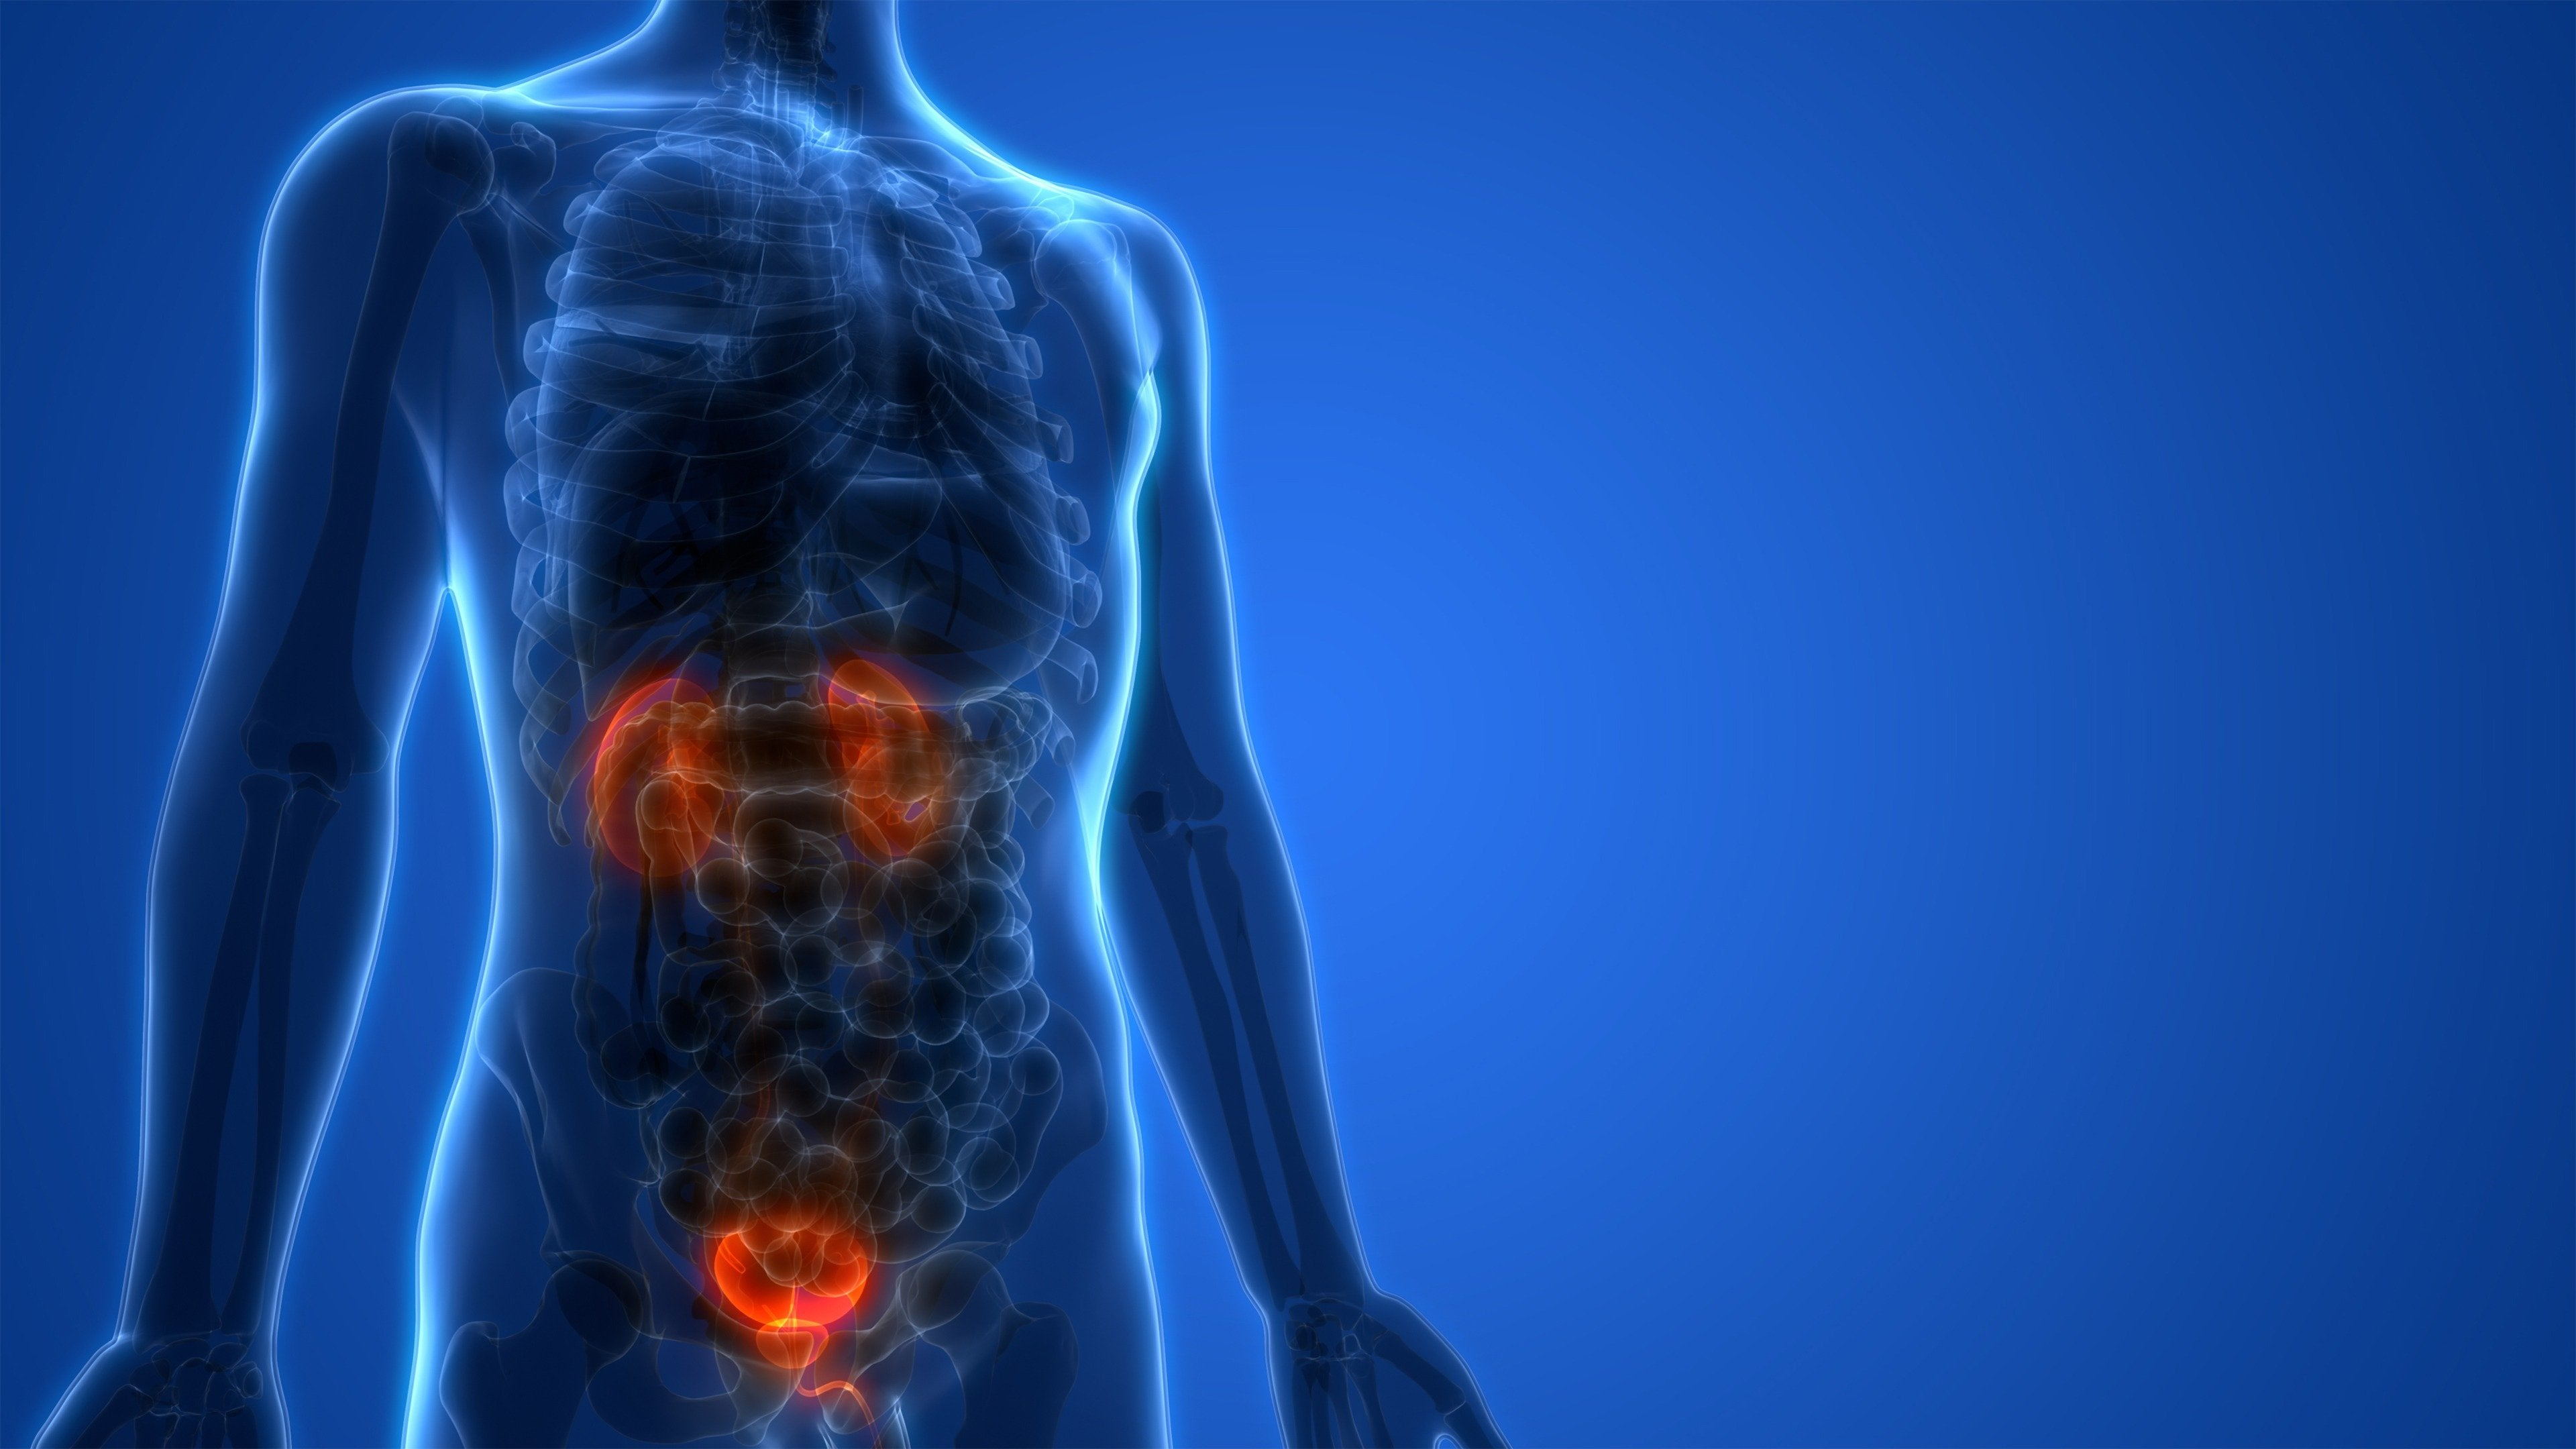 Is Your Bladder Out of Control?